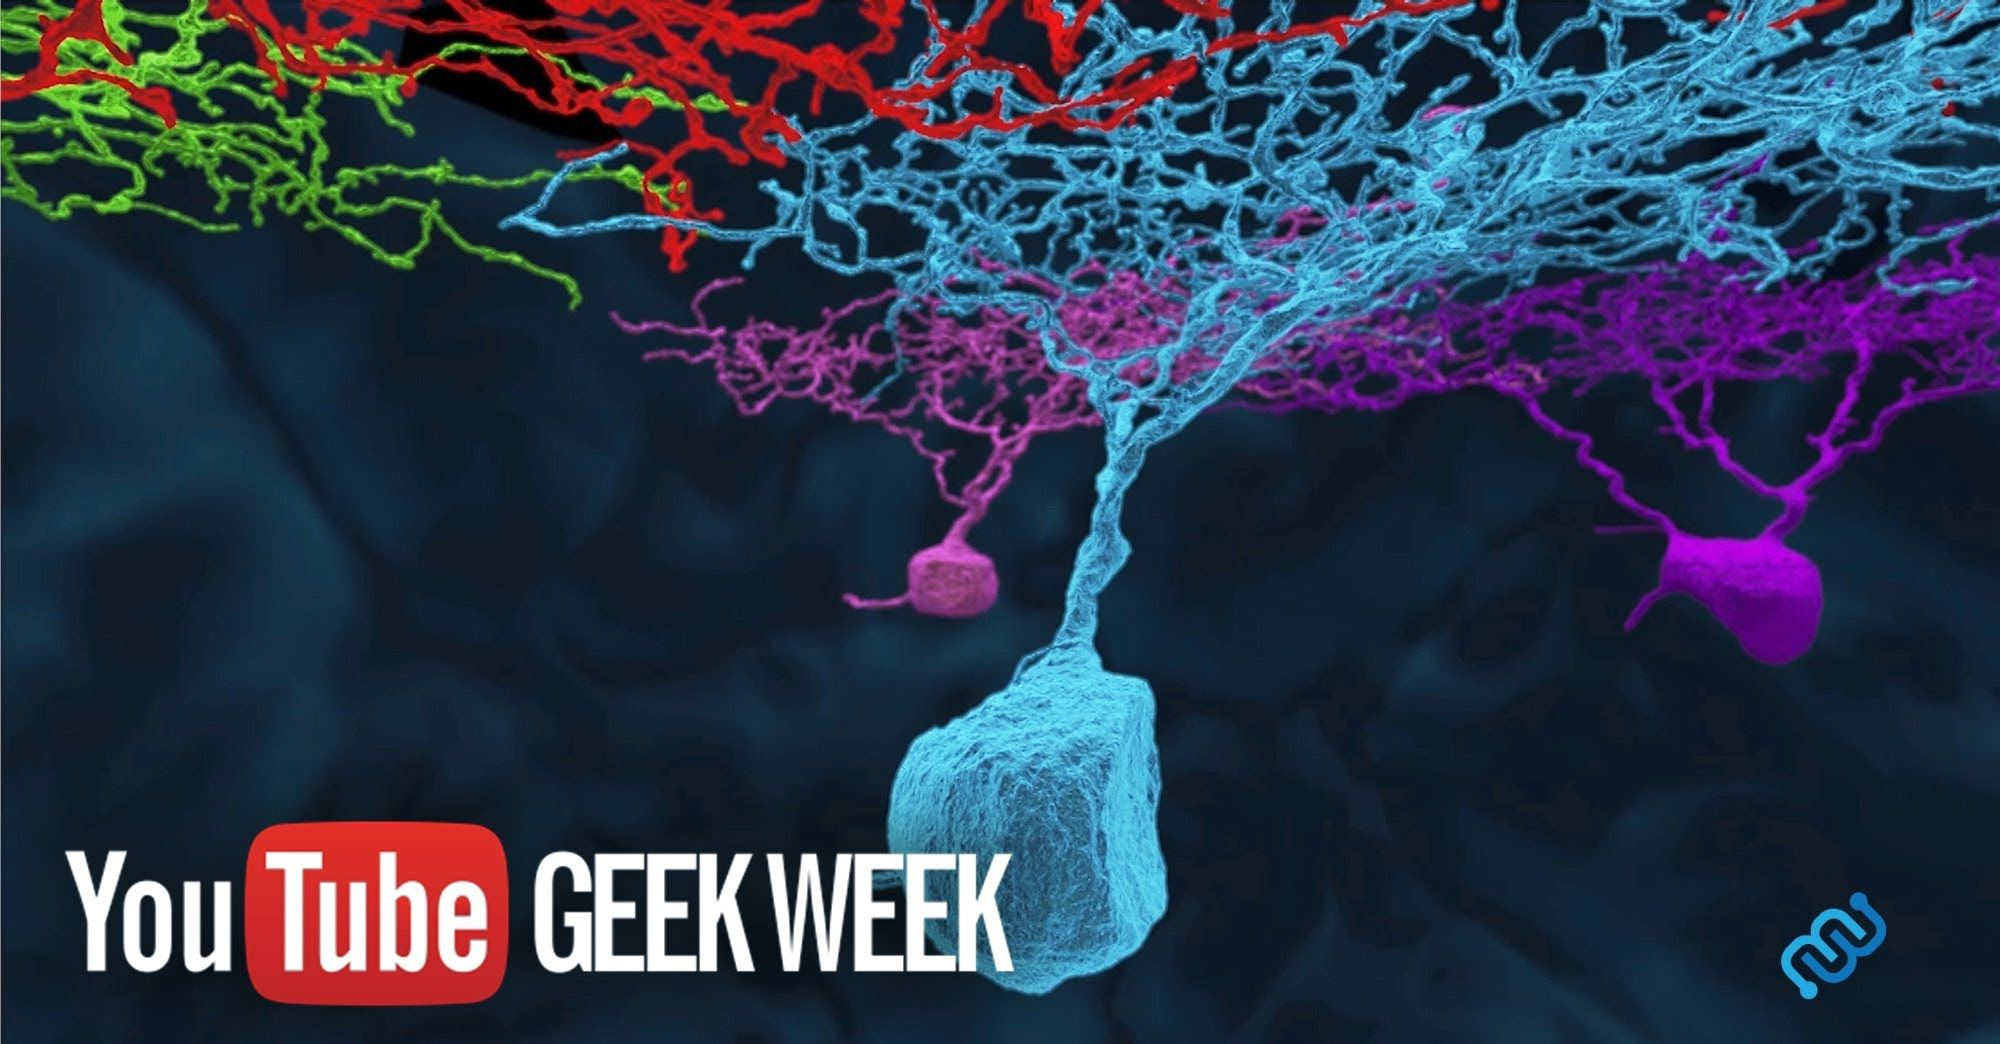 Eyewire a game to map the brain by MIT. Youtube trailer